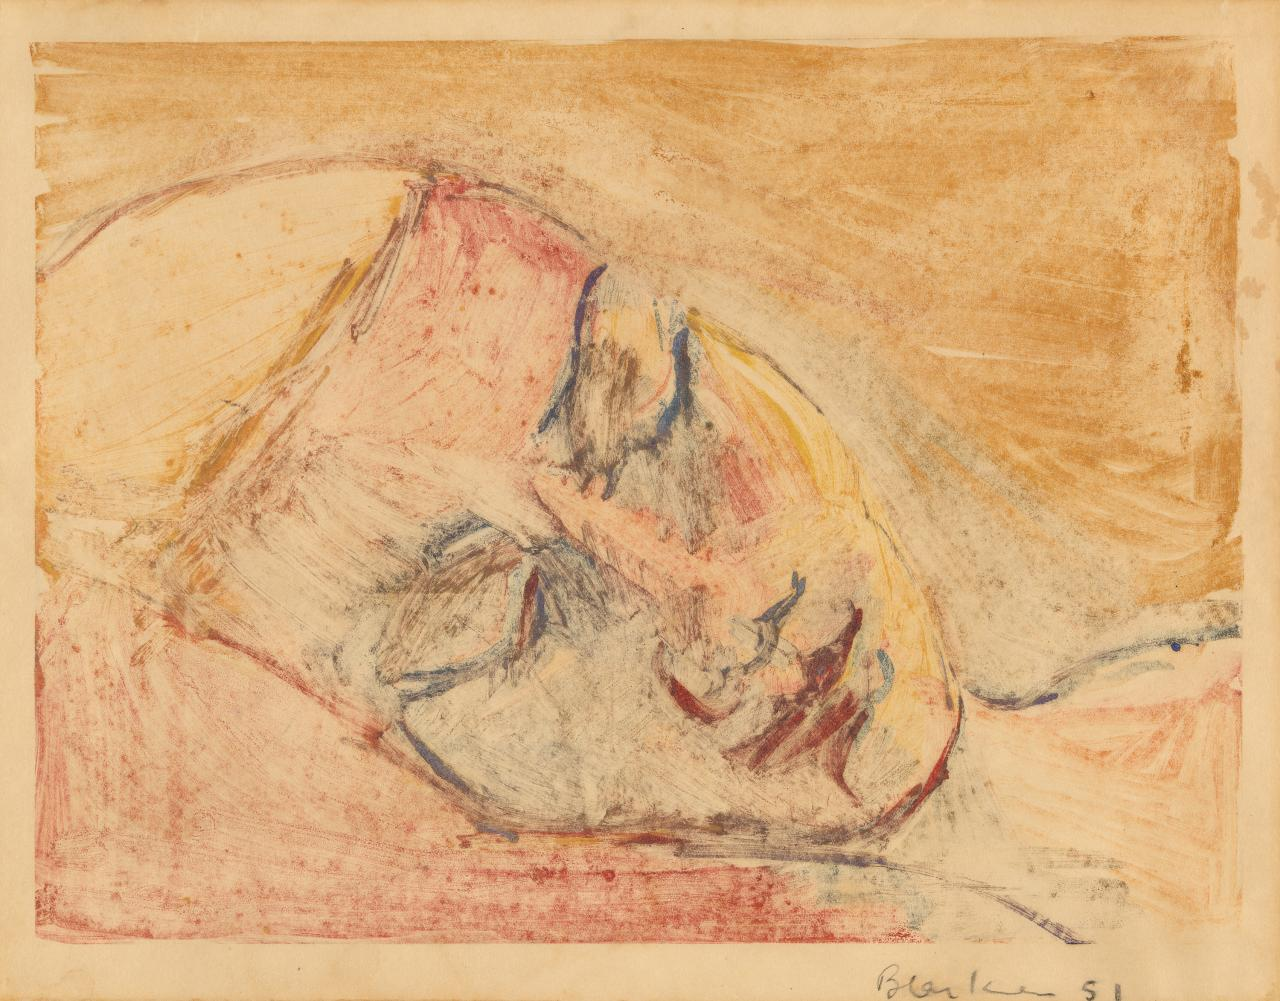 Untitled (Head of a sleeping woman)